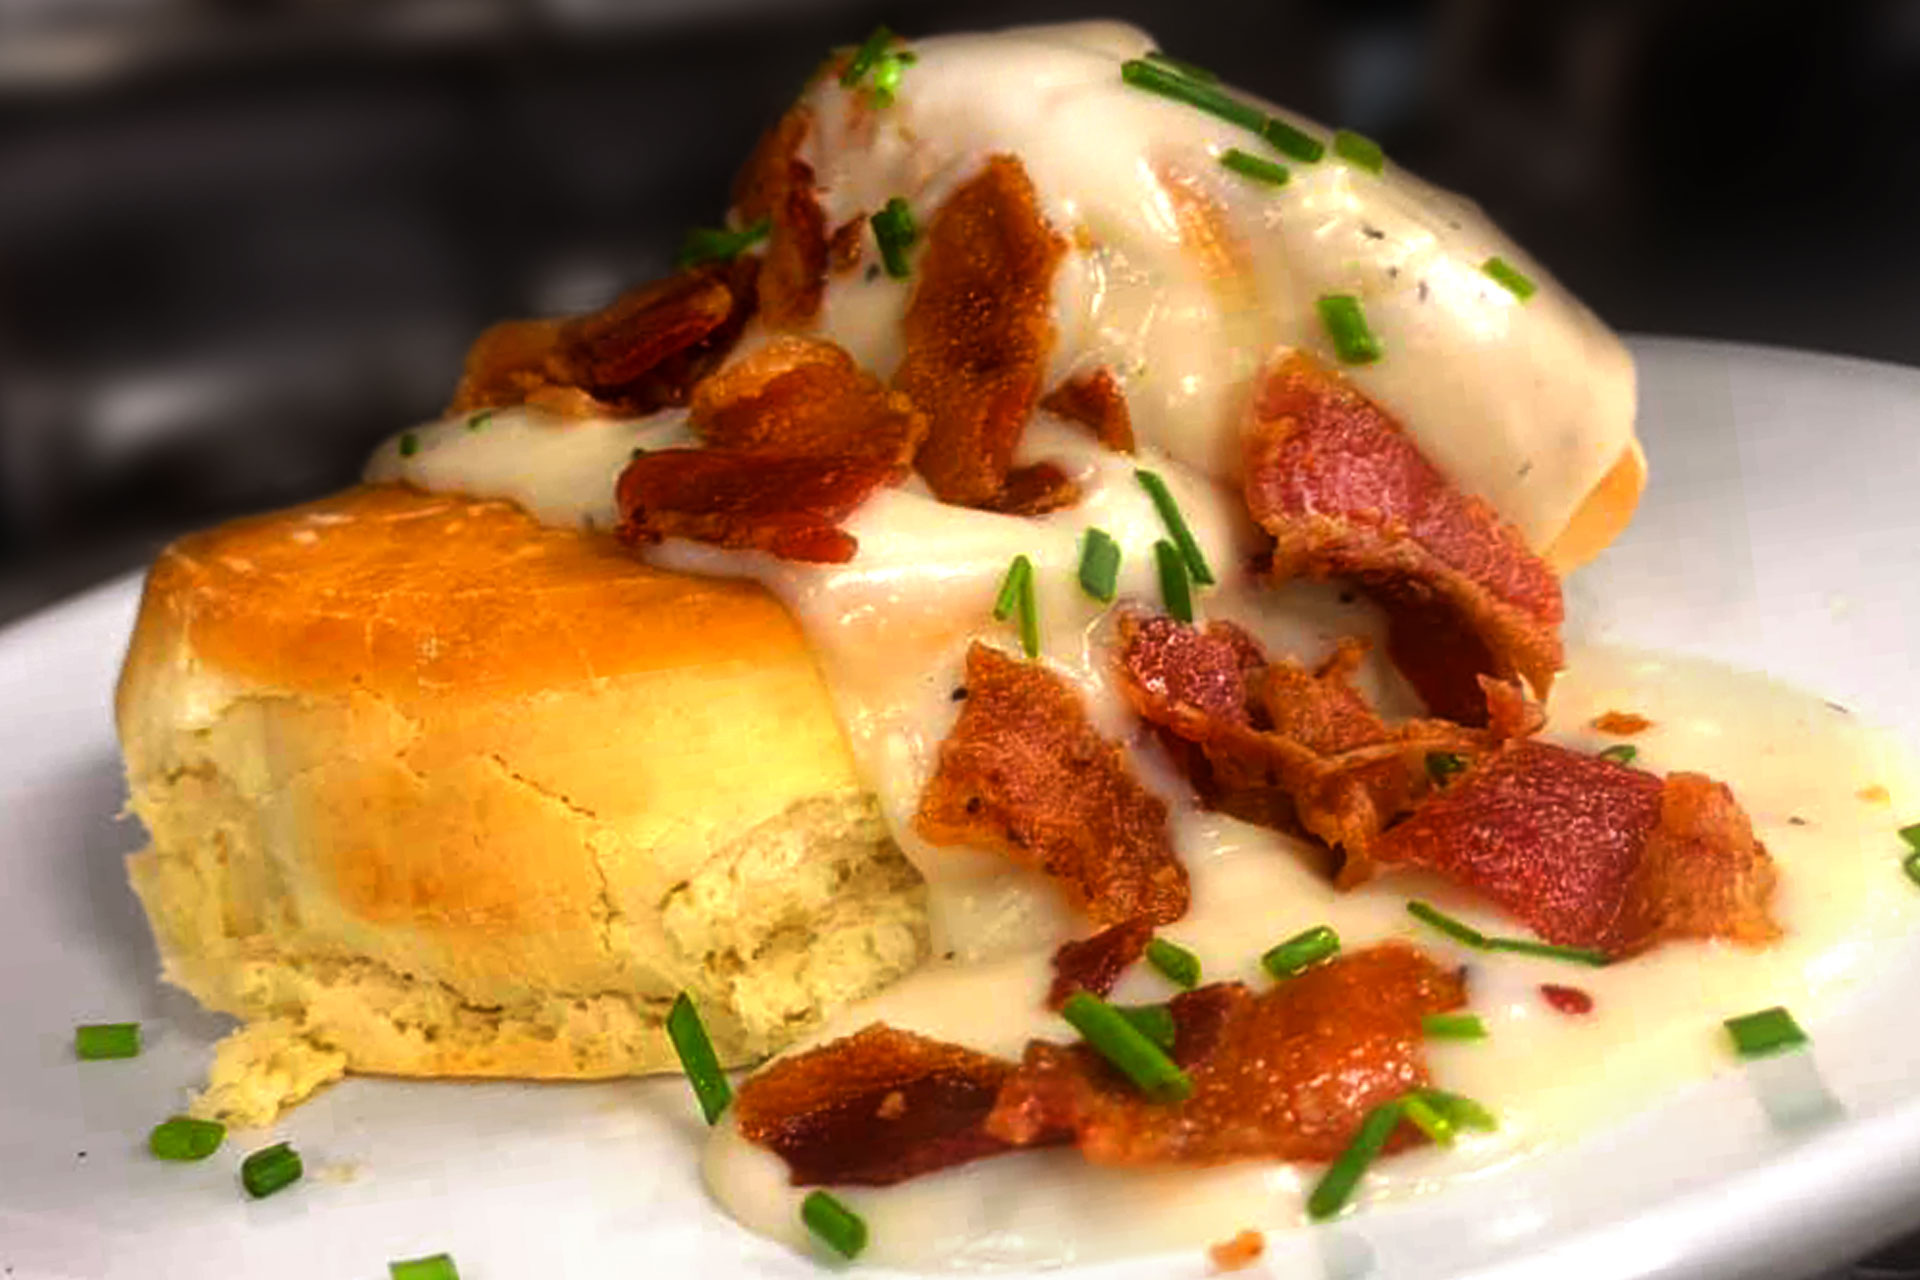 Biscuits and Gravy at 2020 Market